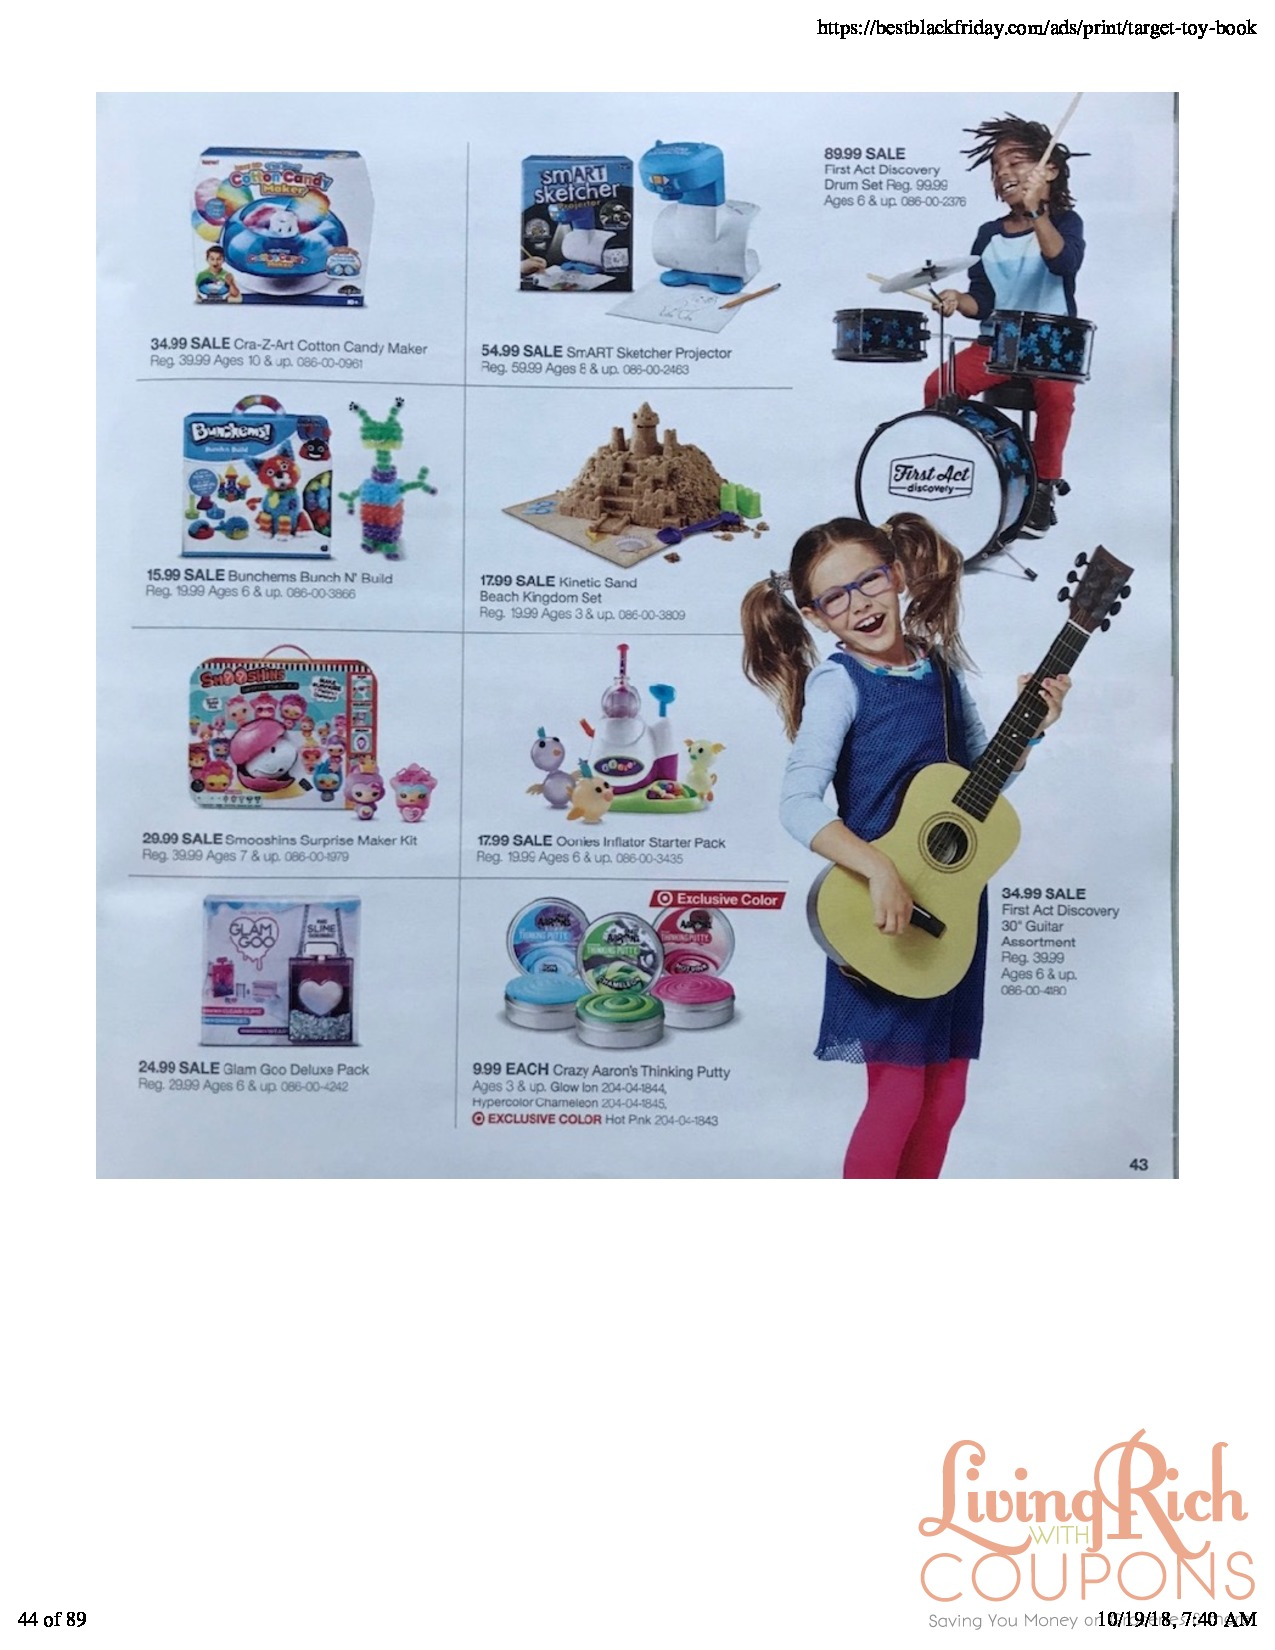 Toy Guitar Target Target Toy Book 2018living Rich With Coupons